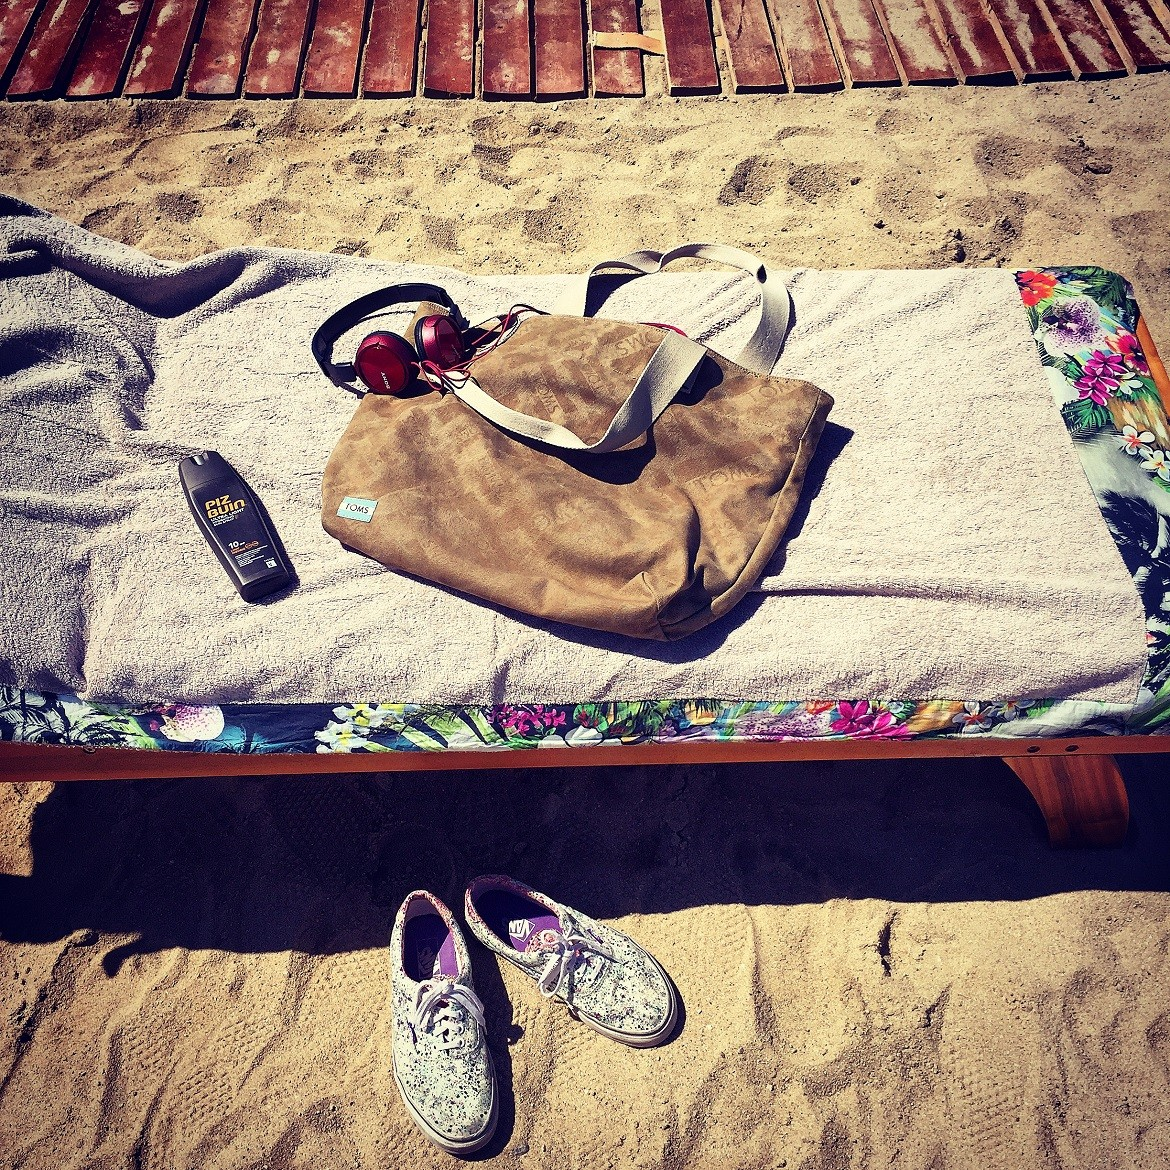 TOMS holdall bag to carry the beach essentials in style!